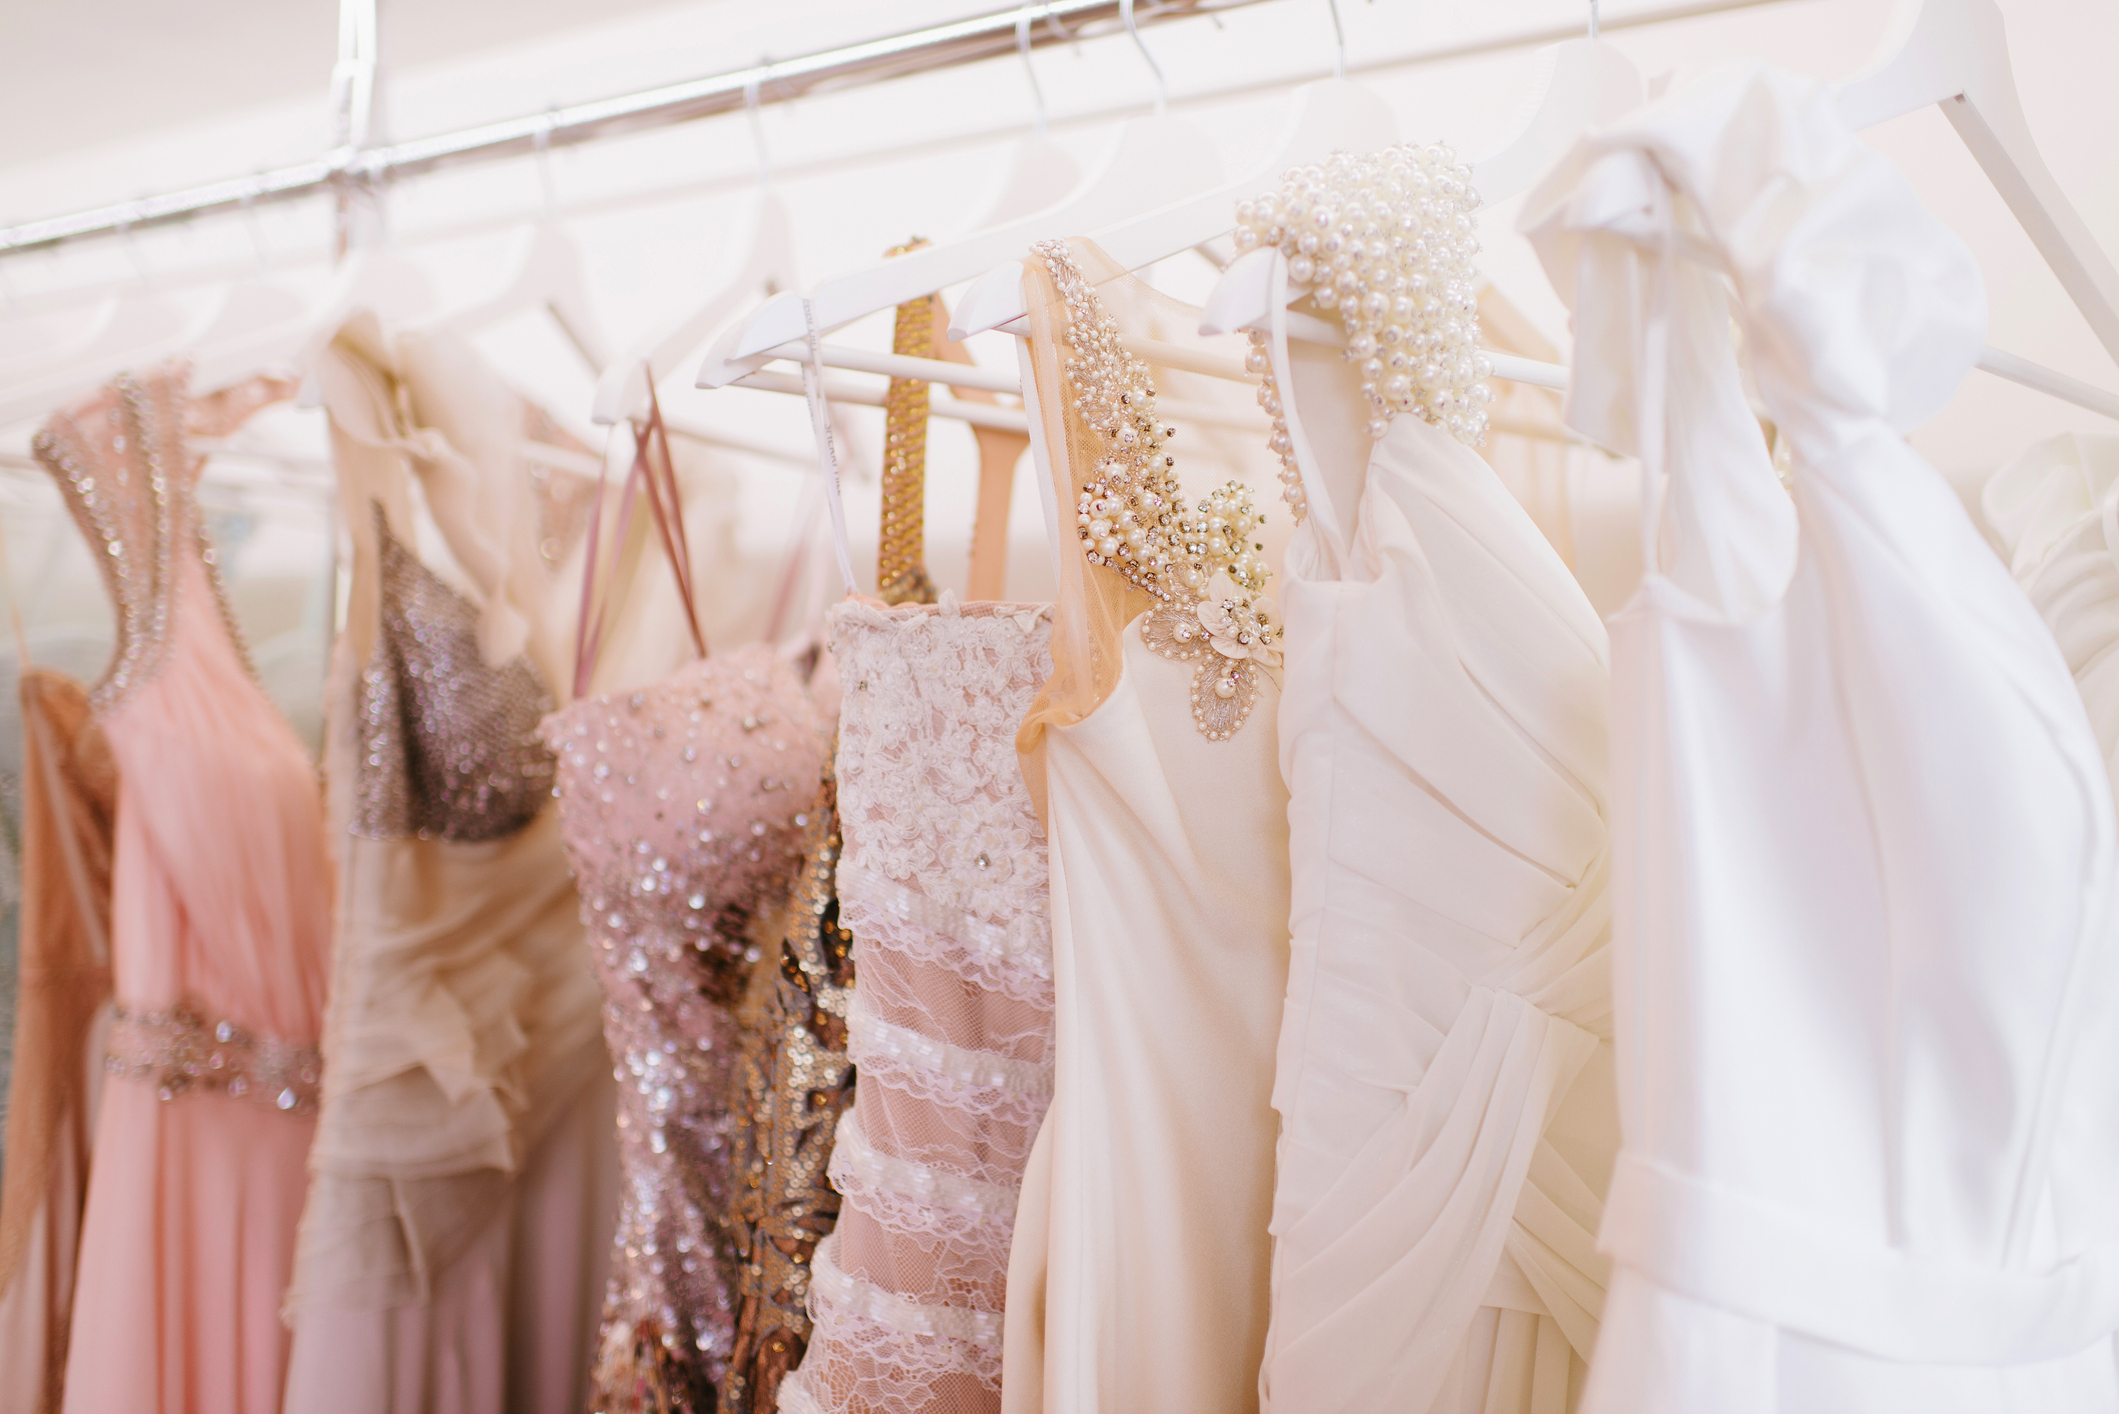 What to wear to a gala